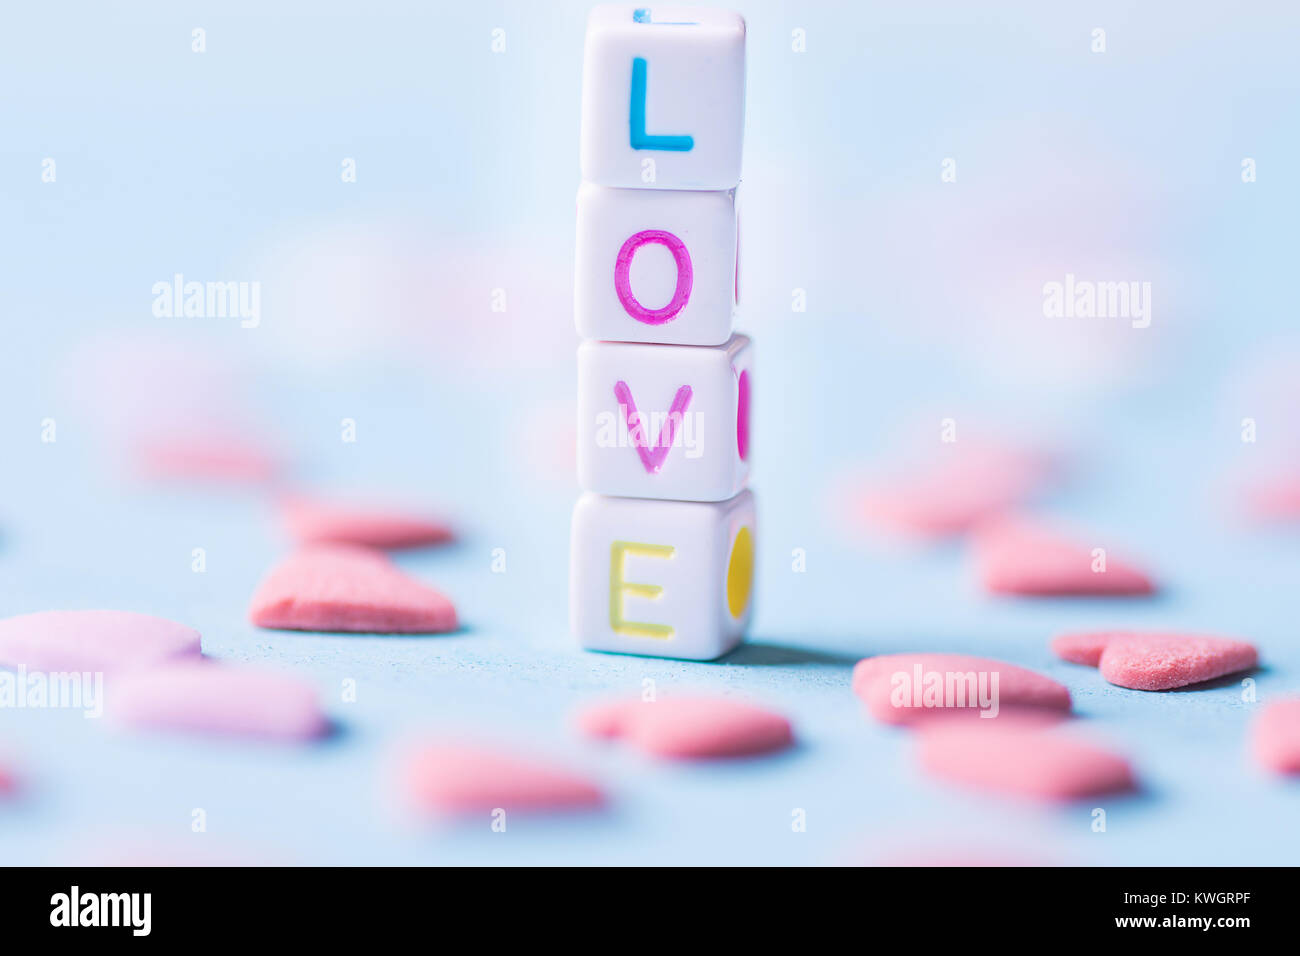 Word Love Constructed from Stacked Letter Cubes. Pink Sugar Candy Sprinkles Scattered on Light Blue Background. - Stock Image